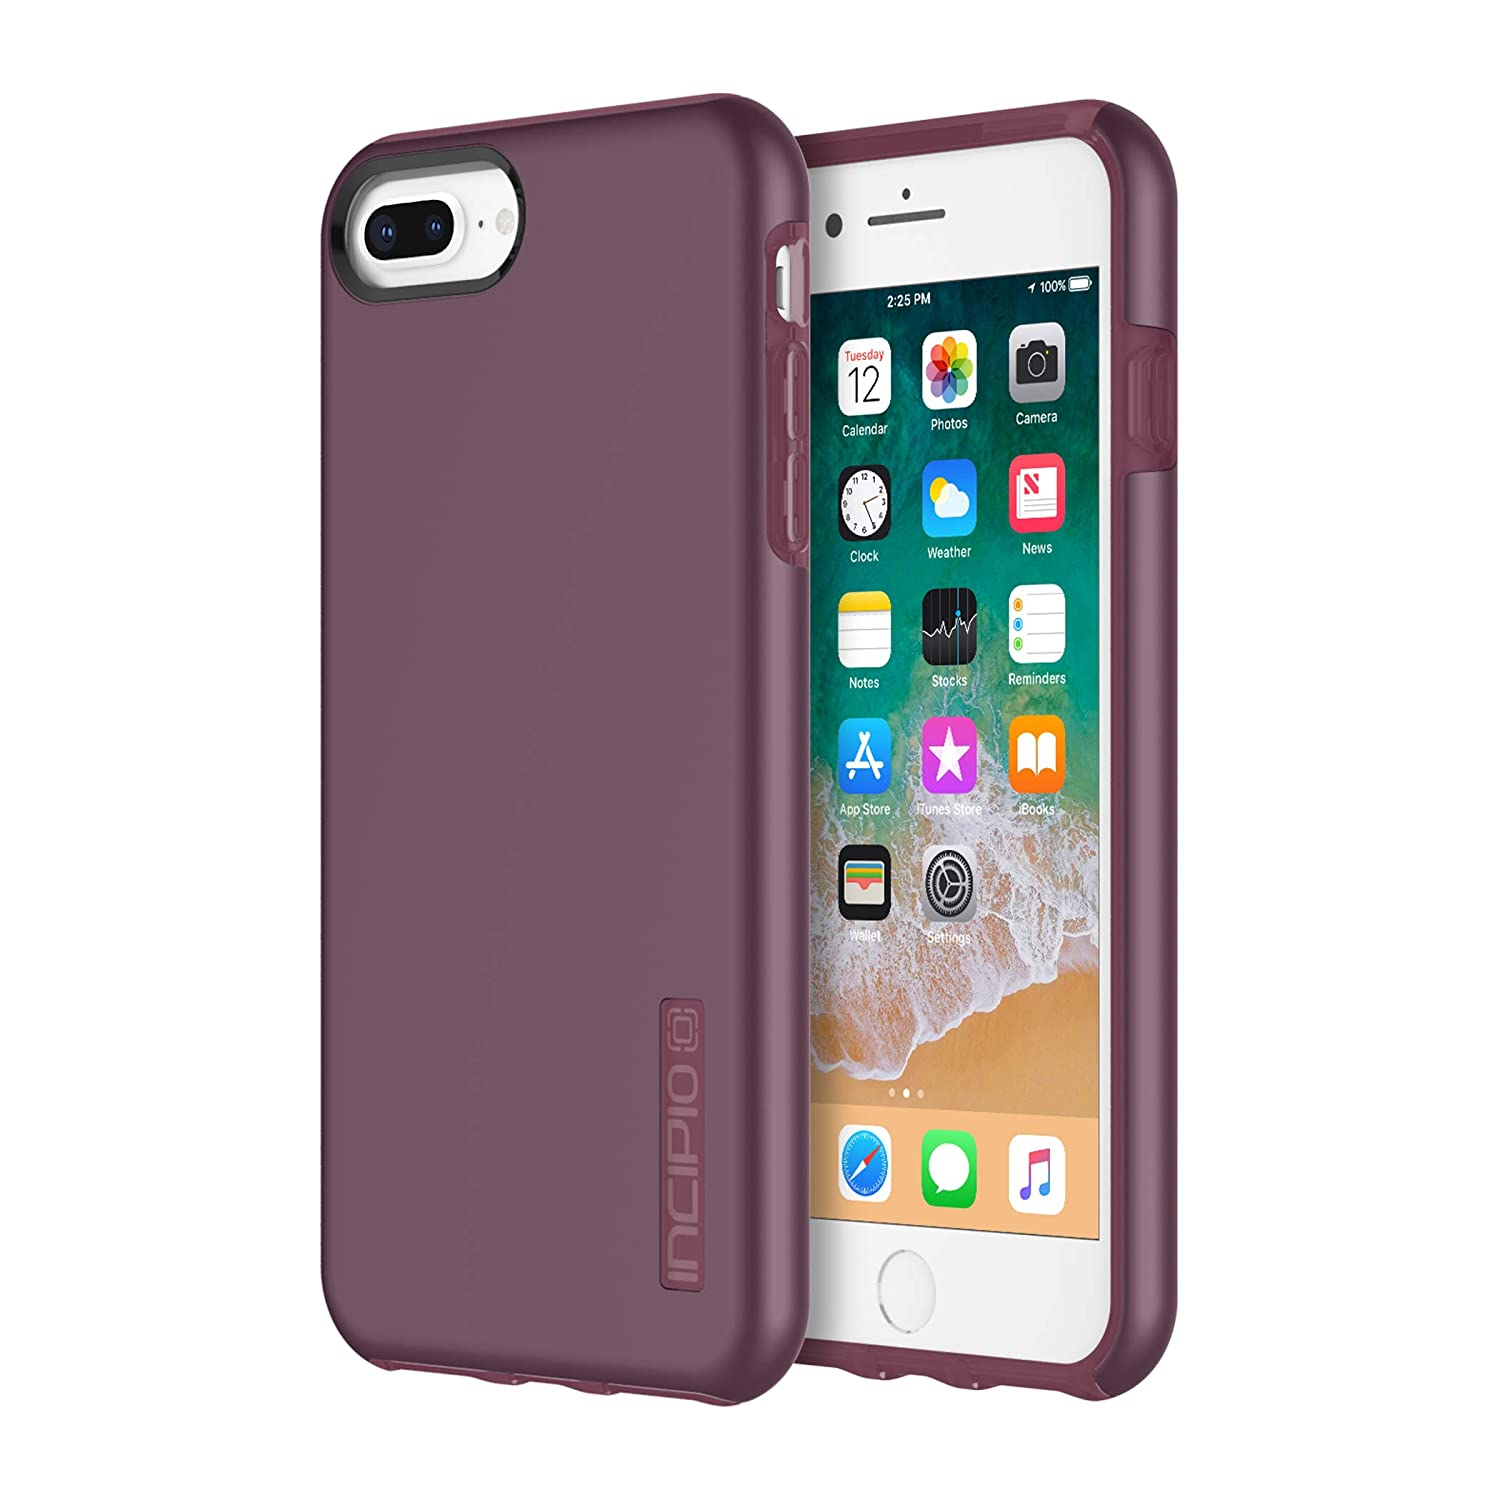 sale retailer 7c07e c127e Incipio DualPro iPhone 8 Plus & iPhone 7/6/6s Plus Case with  Shock-Absorbing Inner Core & Protective Outer Shell for iPhone 8 Plus &  iPhone 7/6/6s ...